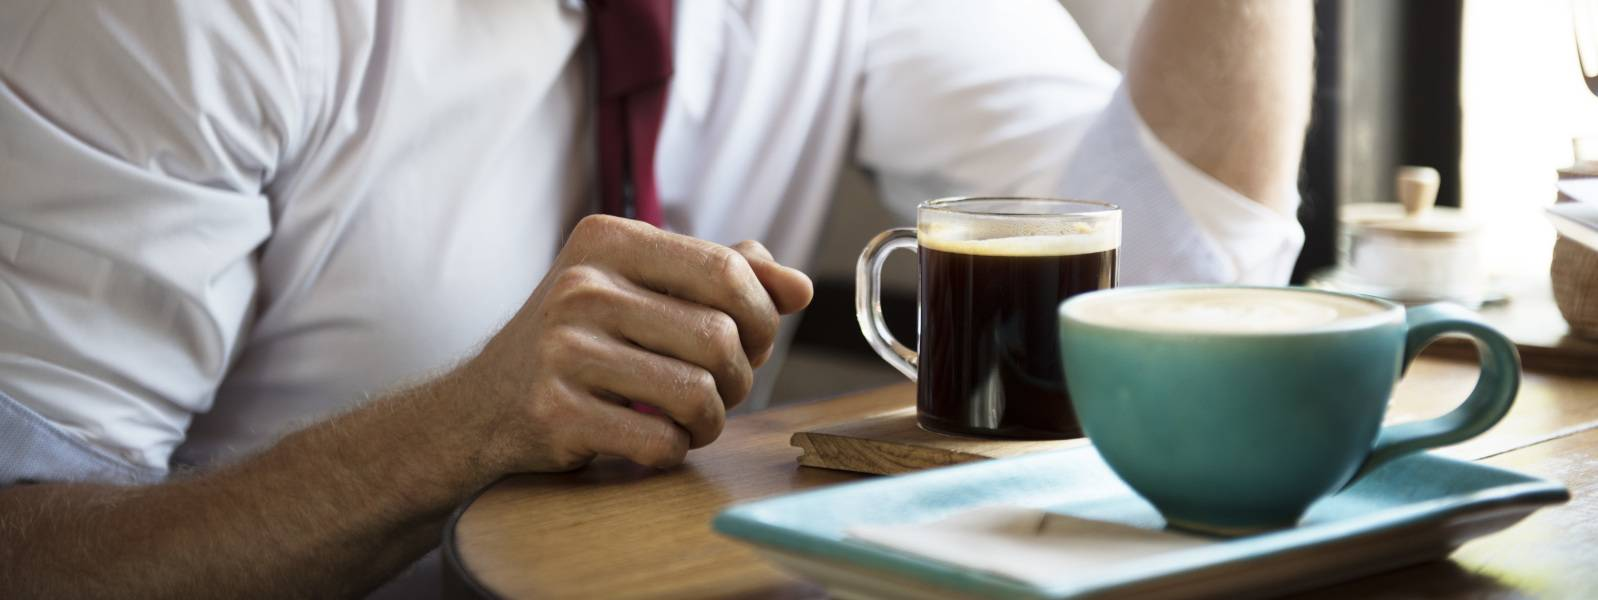 businessman drinking coffee mug high amounts of caffeine exacerbate sleep deprivation